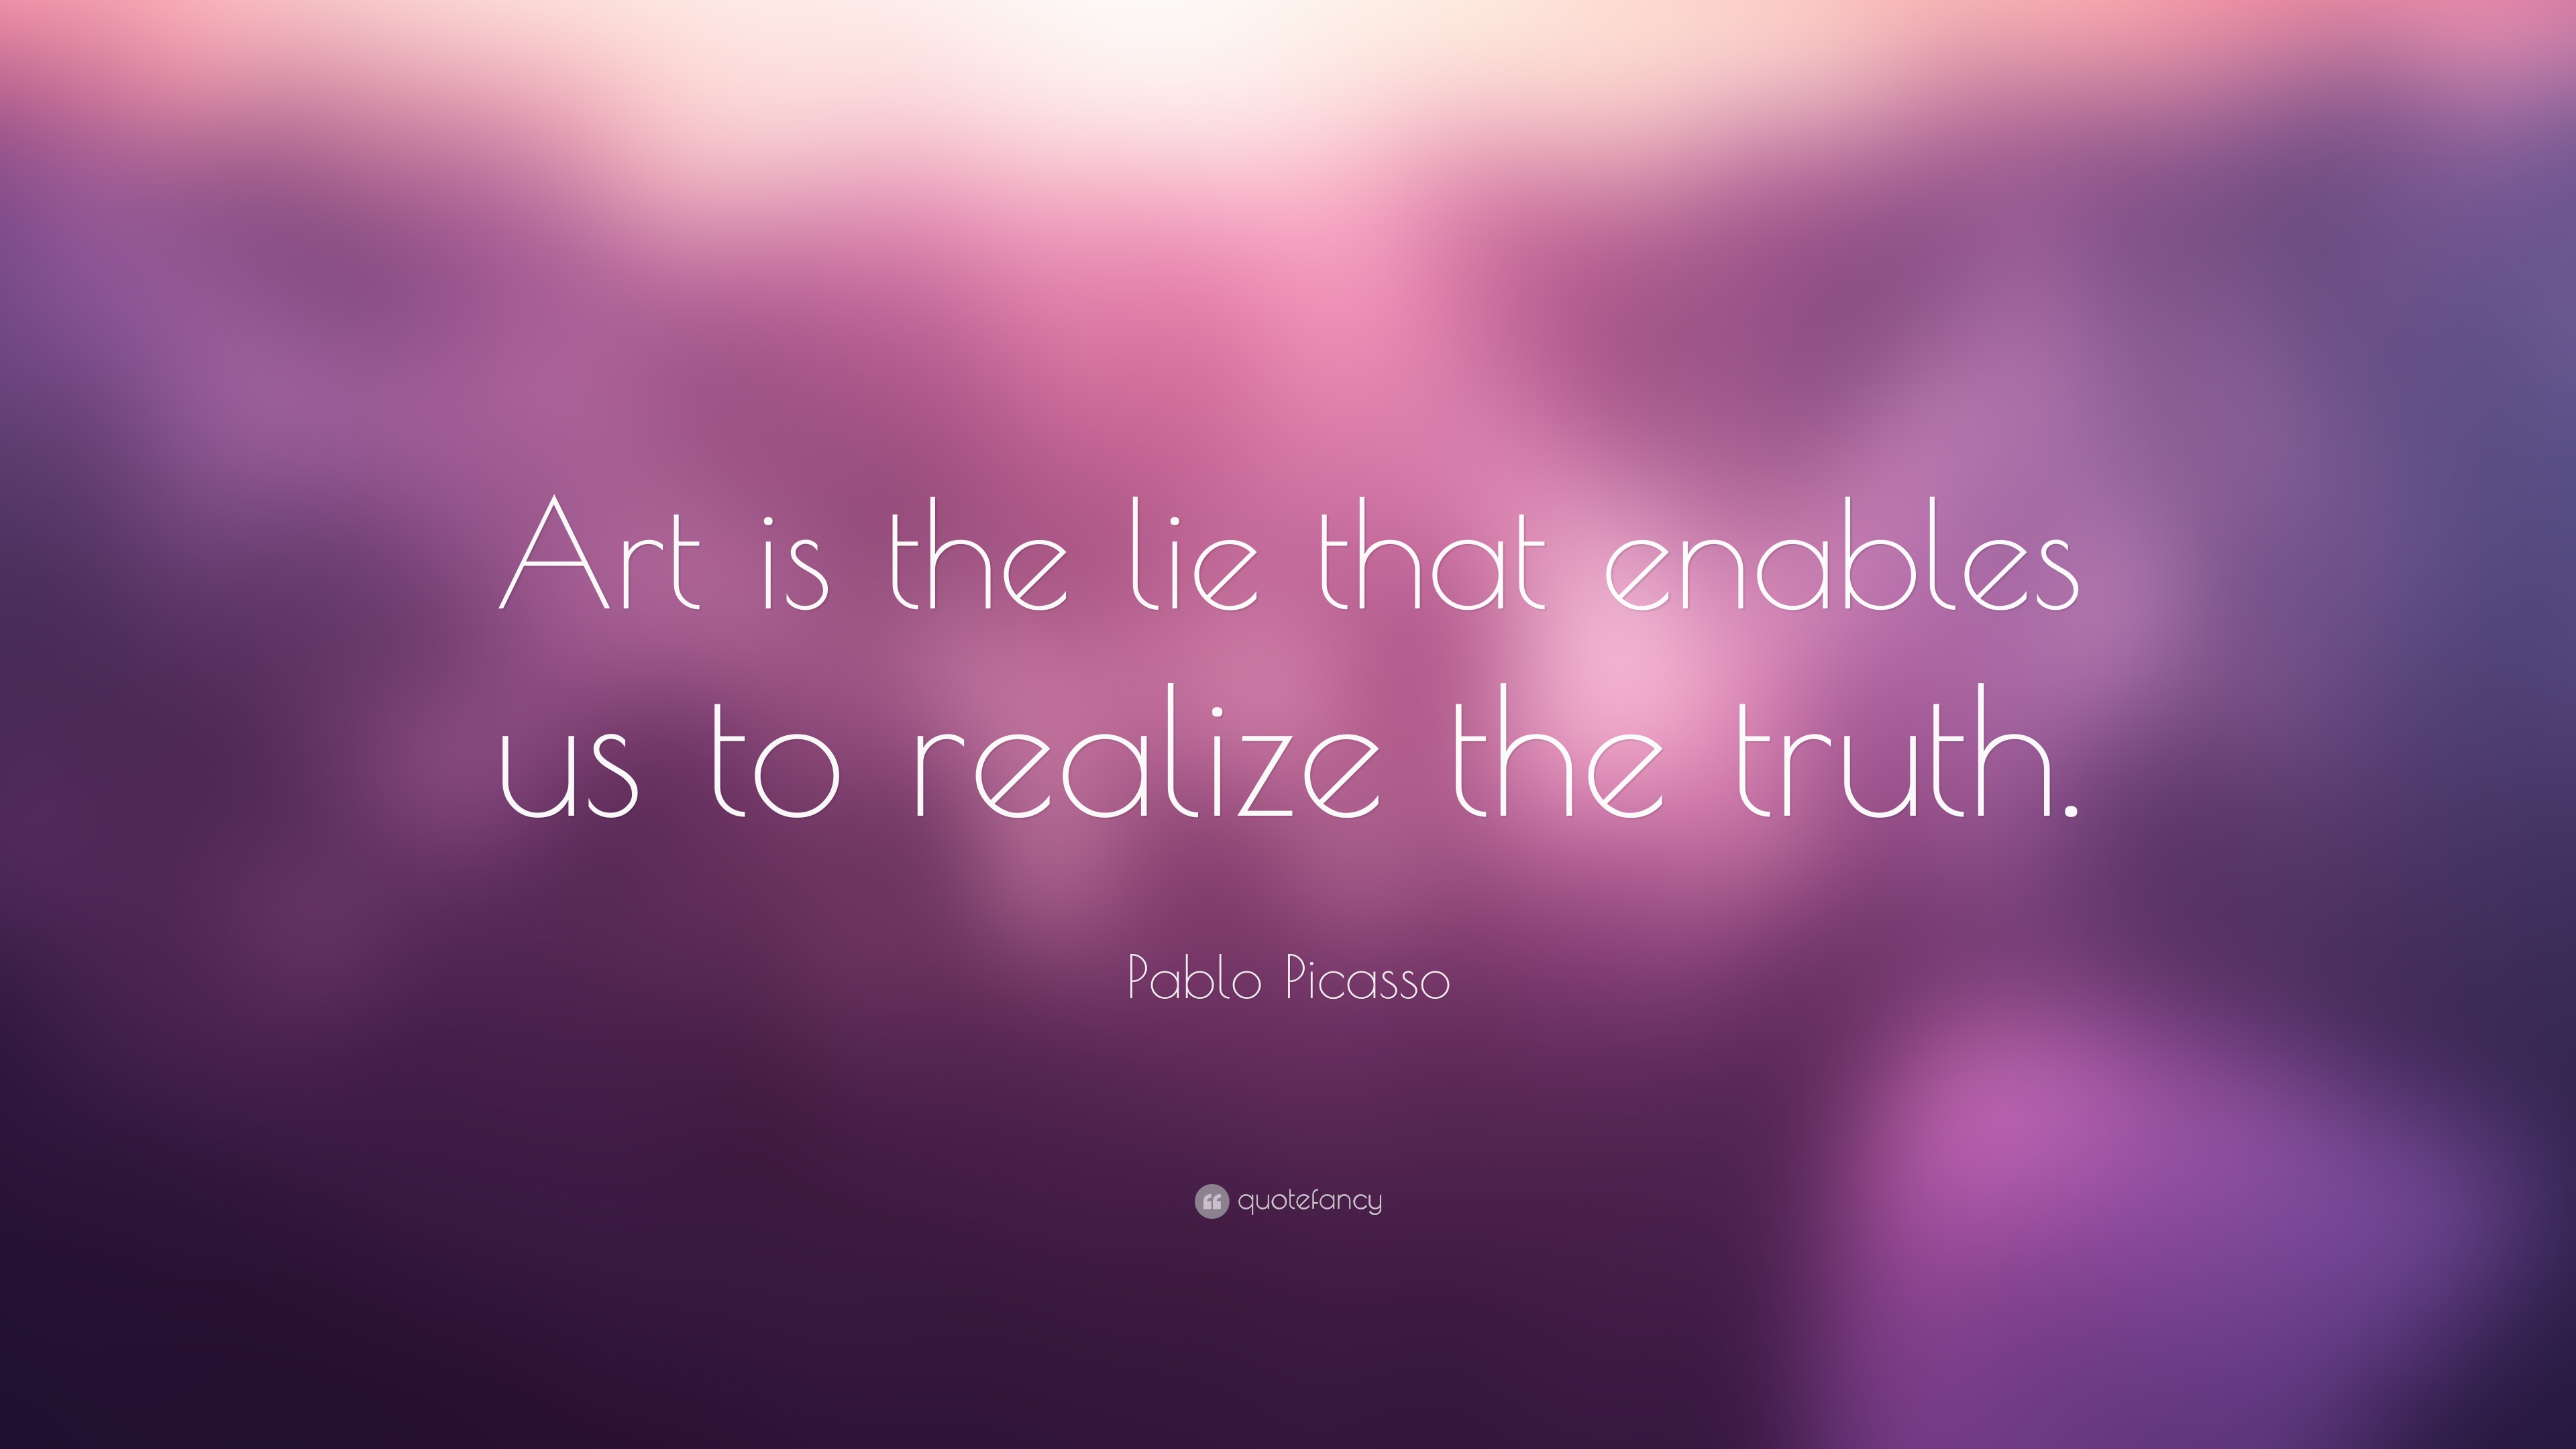 Art is a lie that brings us nearer to the truth?